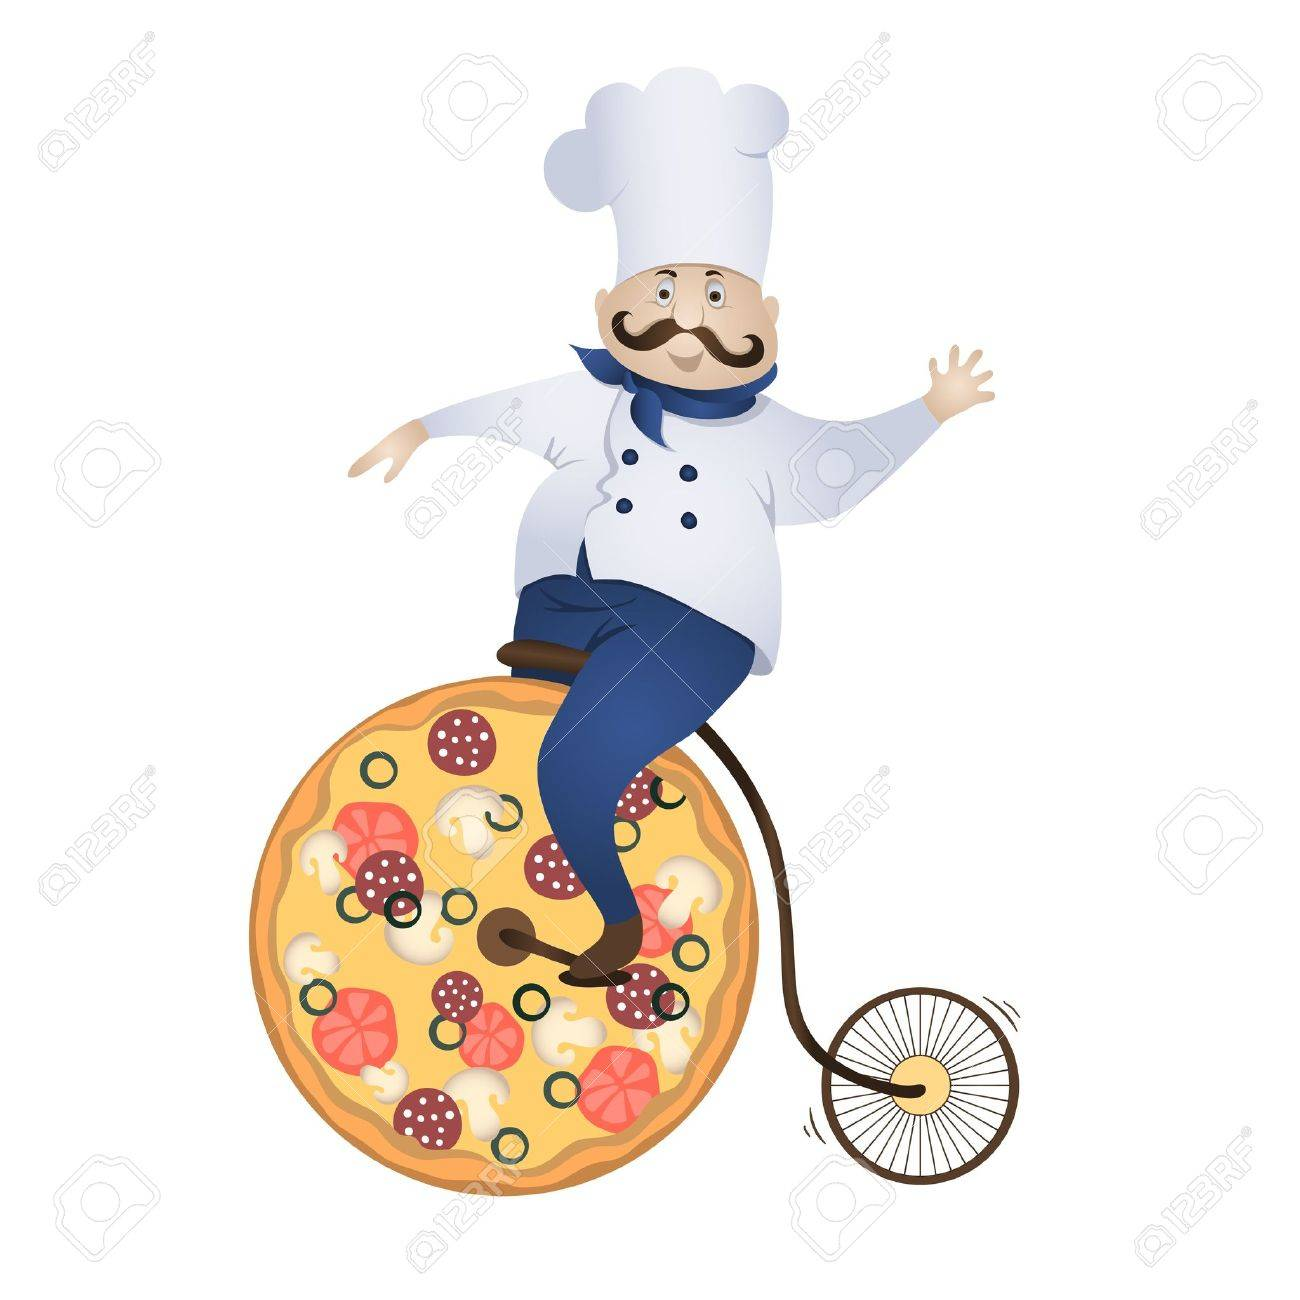 Delivery pizza chef rides a bicycle wheel which - is pizza Stock Vector - 17596923